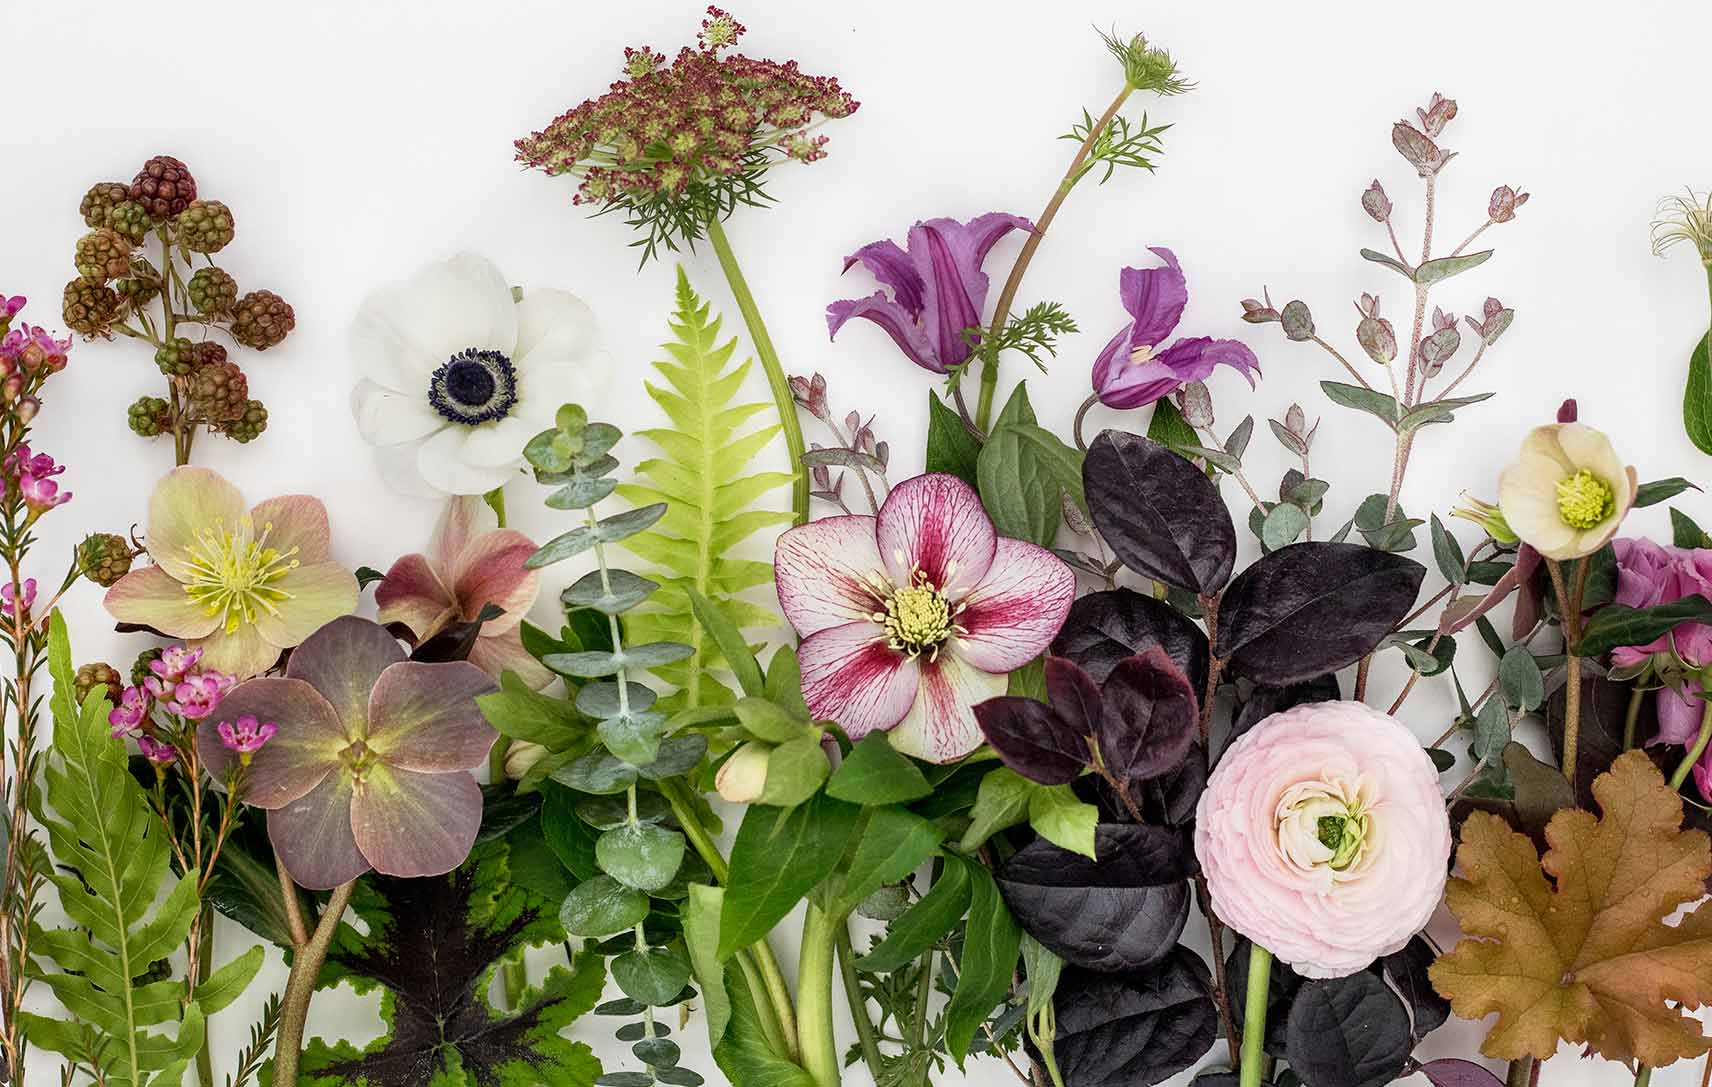 An image of various plant and flowers flat display